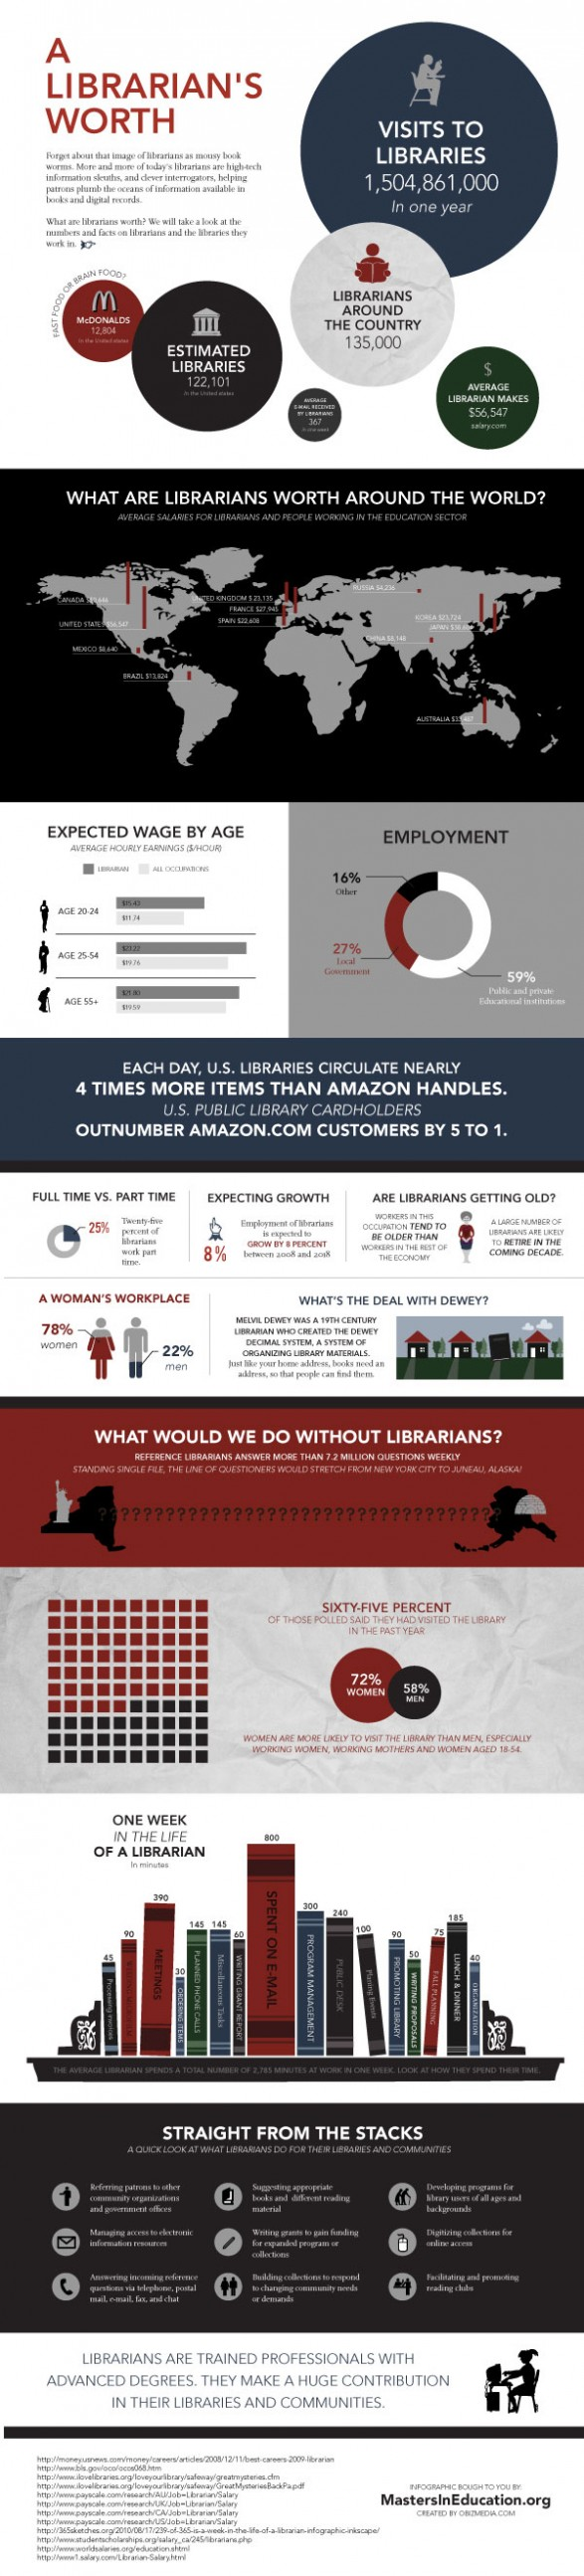 A Librarian's Worth